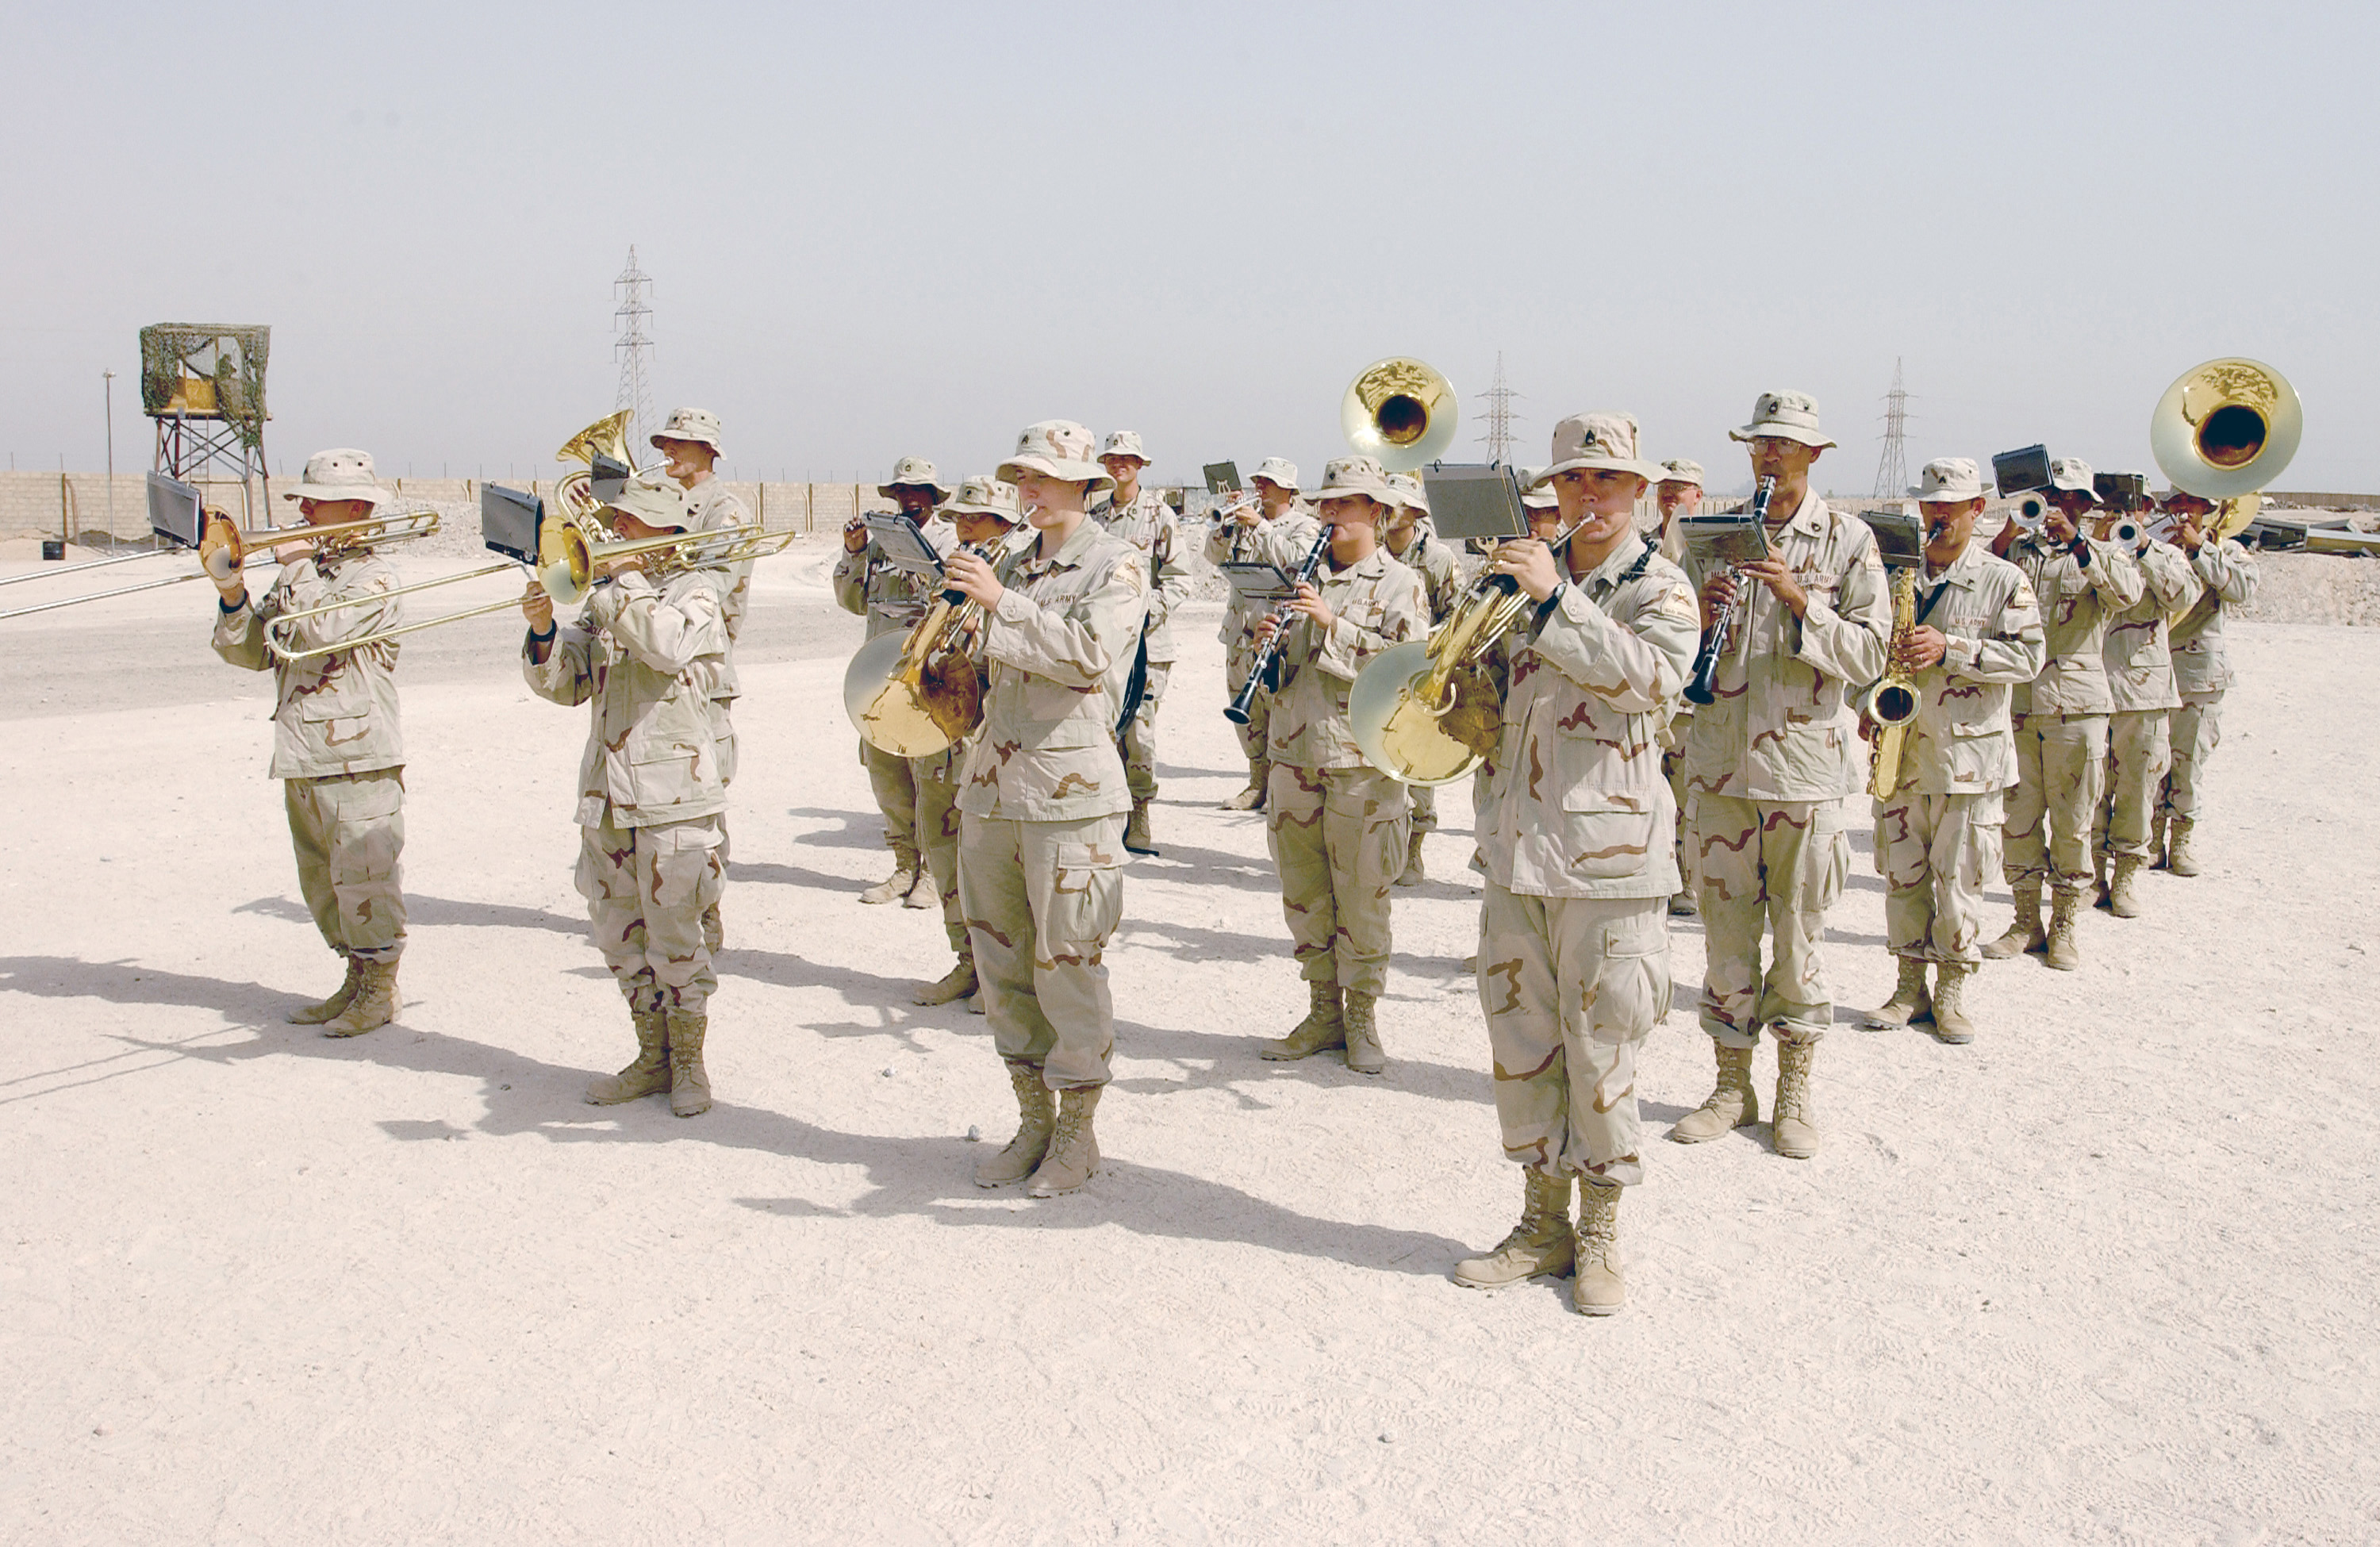 The US Army's (USA) 1ST Armored Division (AD) Band play the Iraqi and US national anthems during a graduation ceremony at the Iraqi Civil Defense Course (ICDC). The ICDC conducted weekly in Baghdad, Iraq, to train new Iraqi recruits on soldier skills and to prepare them to work with coalition forces supporting Operation IRAQI FREEDOM